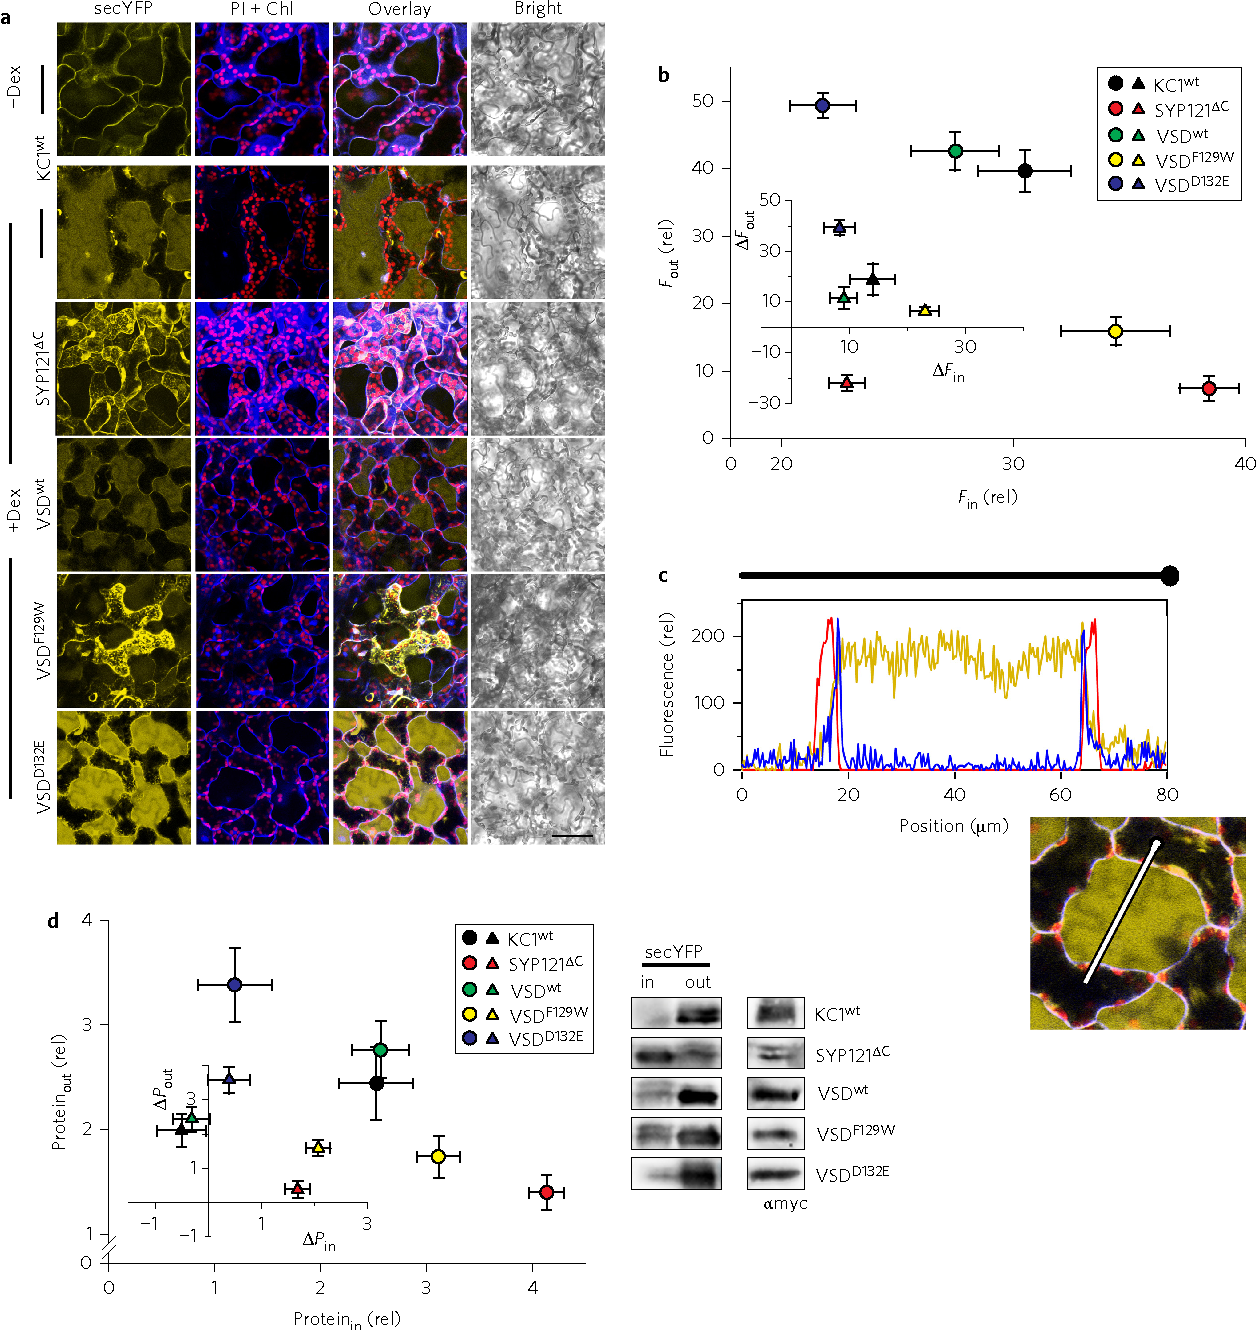 Figure 4 | KC1 and its VSD promote secretion in parallel with VSD voltage bias. a, Confocal images from wild-type Arabidopsis leaf mesophyll stably transformed to express secYFP and, on dexamethasone (Dex) induction, full-length KC1 K+ channel (KC1wt), its VSD (VSDwt), the up (closed, VSDF129W) and down (open, VSDD132E) conformers, and SYP121ΔC as a control. Leaves were infiltrated with 10 μM propidium iodide (PI) to label the cell wall. Fluorescence